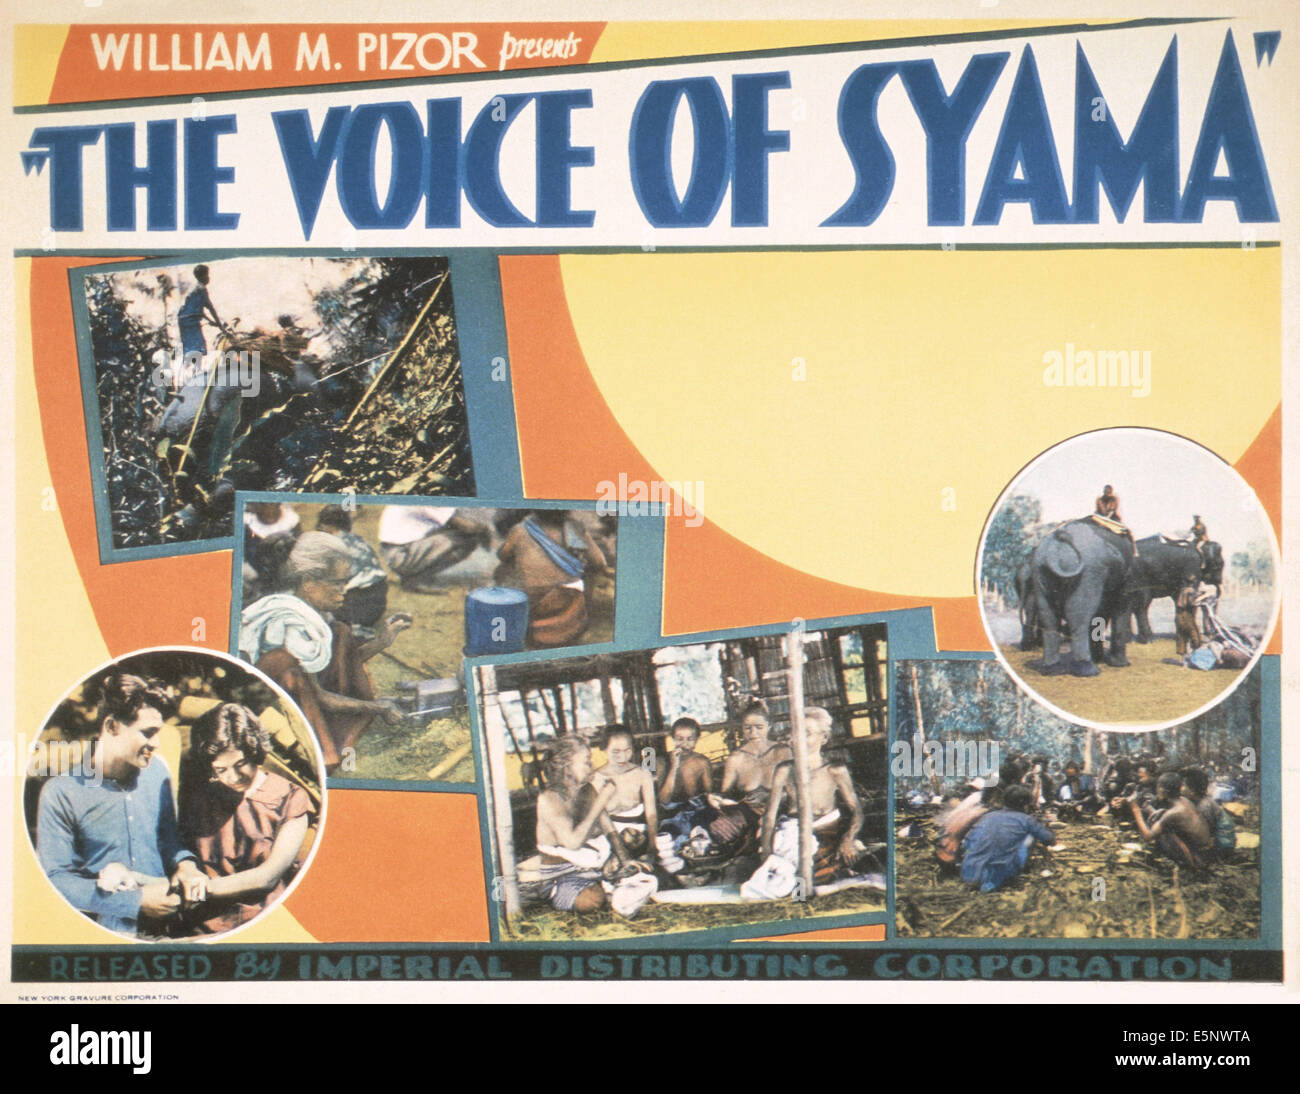 THE VOICE OF SYAMA, US lobbycard, 1930s - Stock Image